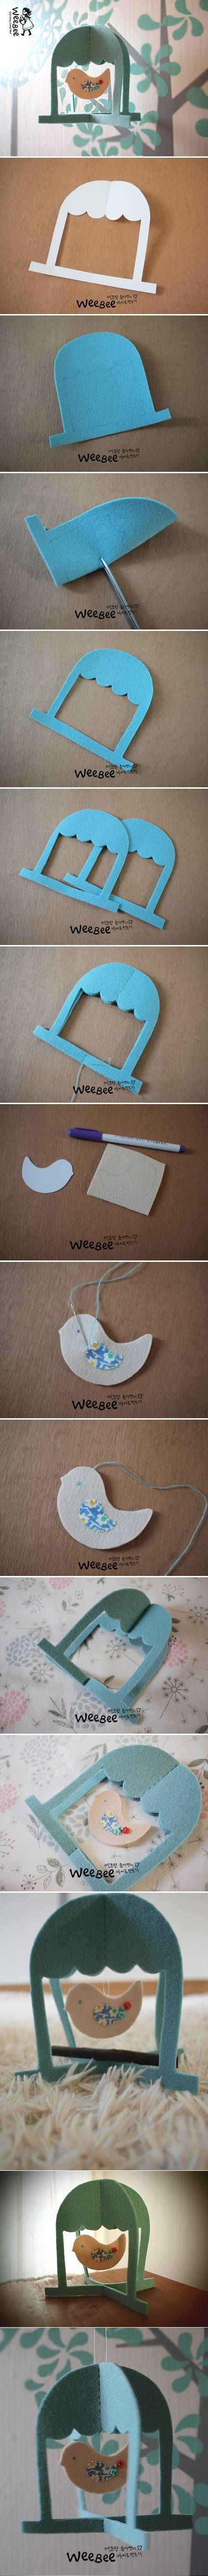 DIY Cute Felt Bird Mobile